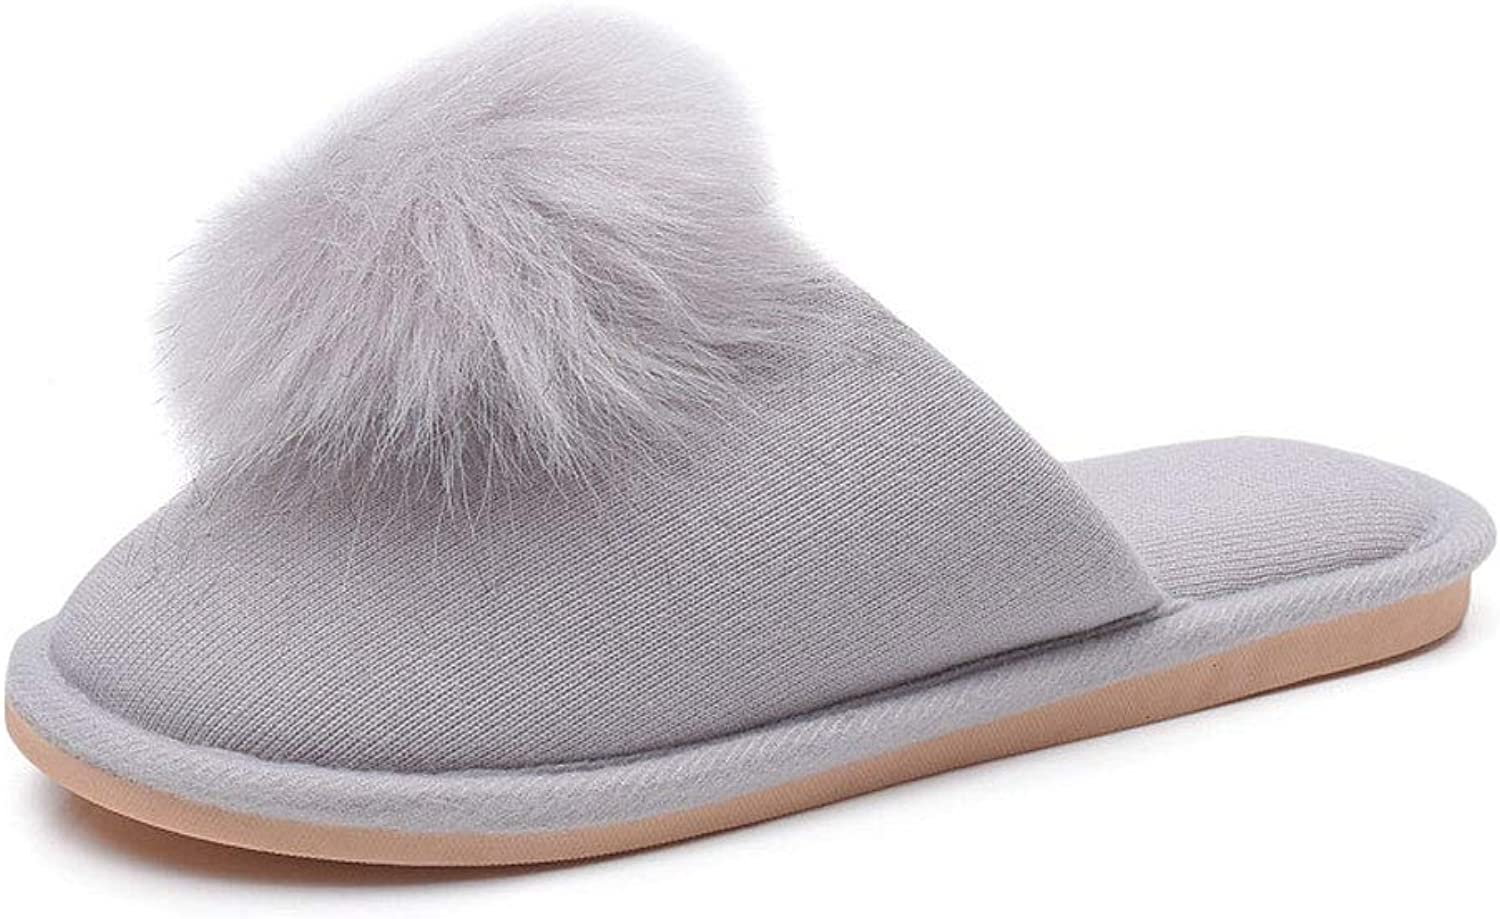 Womens Slippers Ladies Slippers Memory Foam House Home Slip On Indoor Warm Plush Lightweight shoes Anti Skid Sole